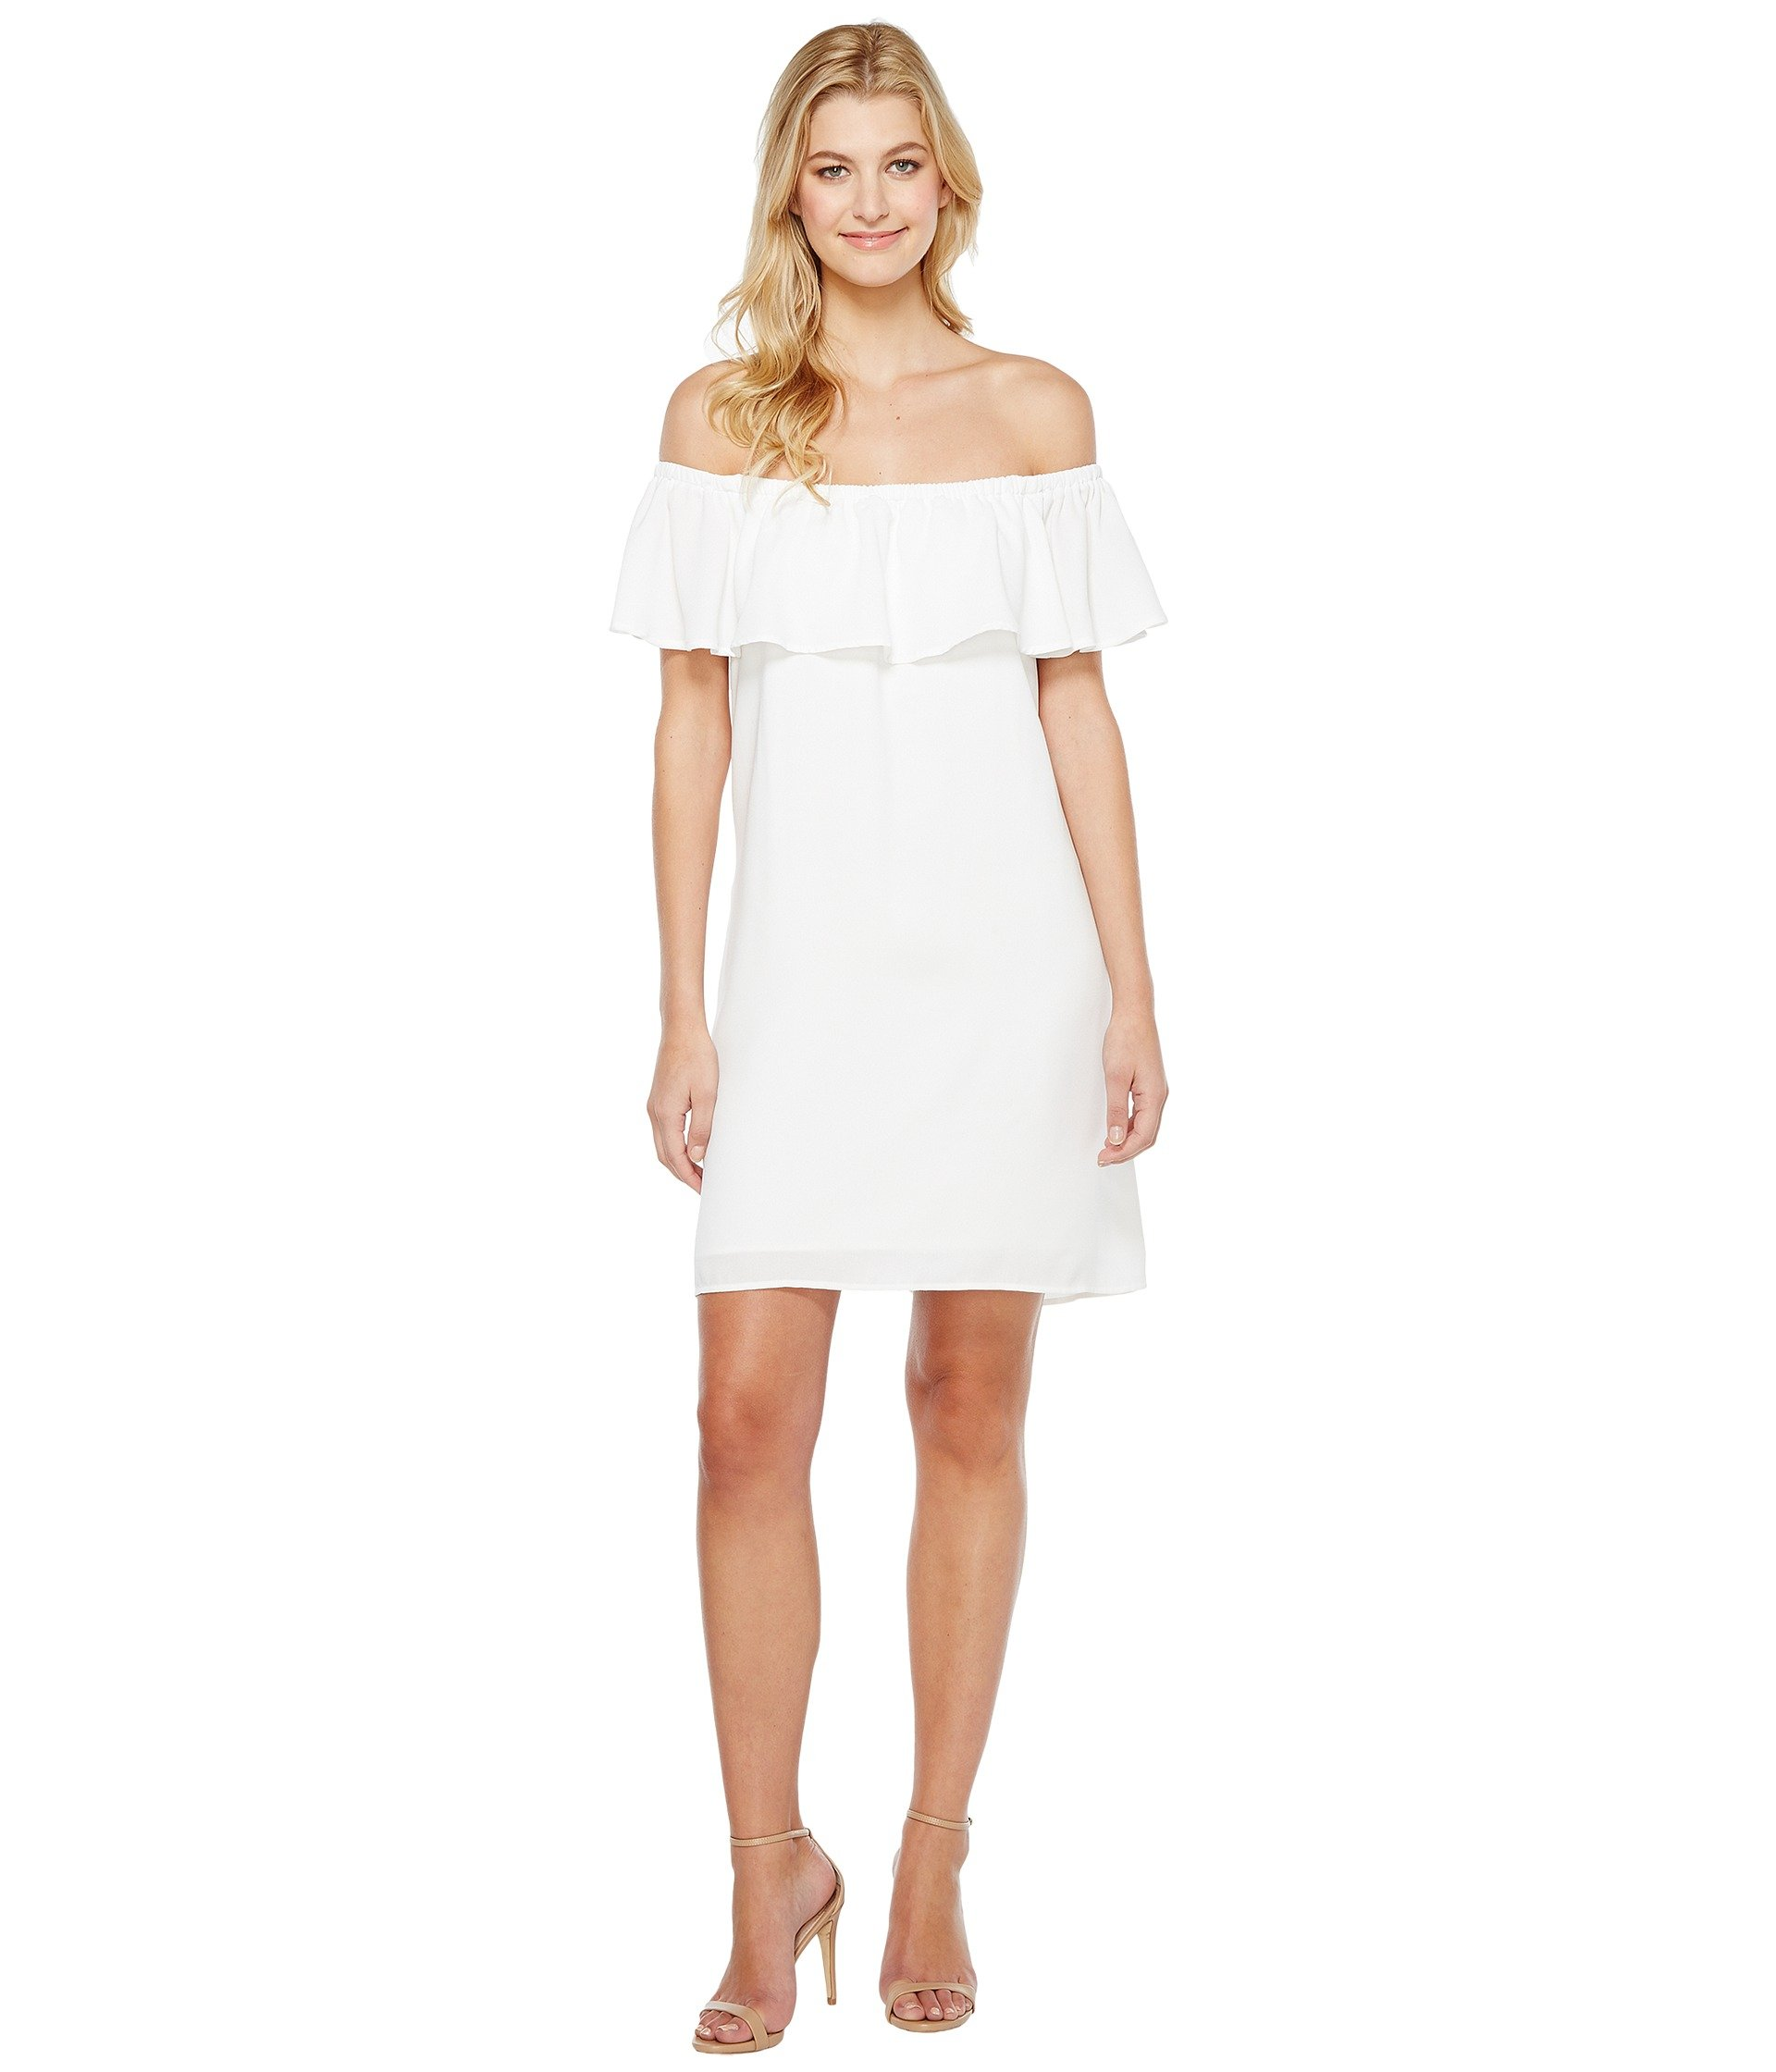 Candy Dress, Empire White